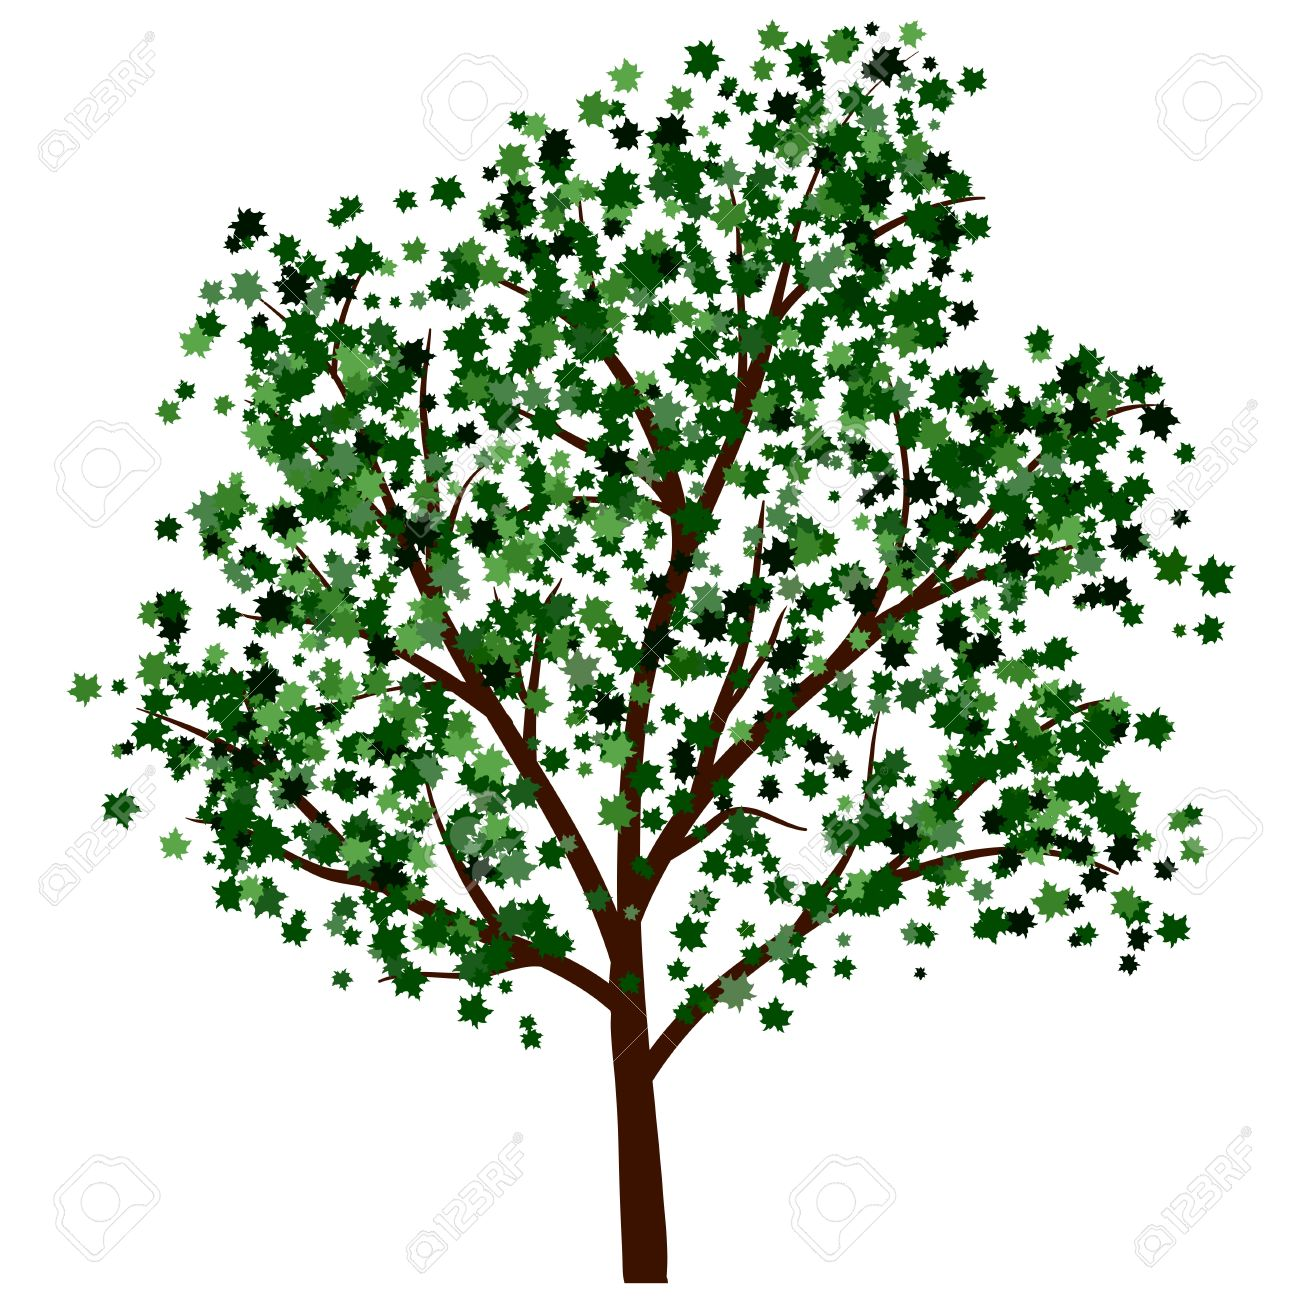 Summer tree with green leaves. EPS 10 vector illustration. Stock Vector - 19802305